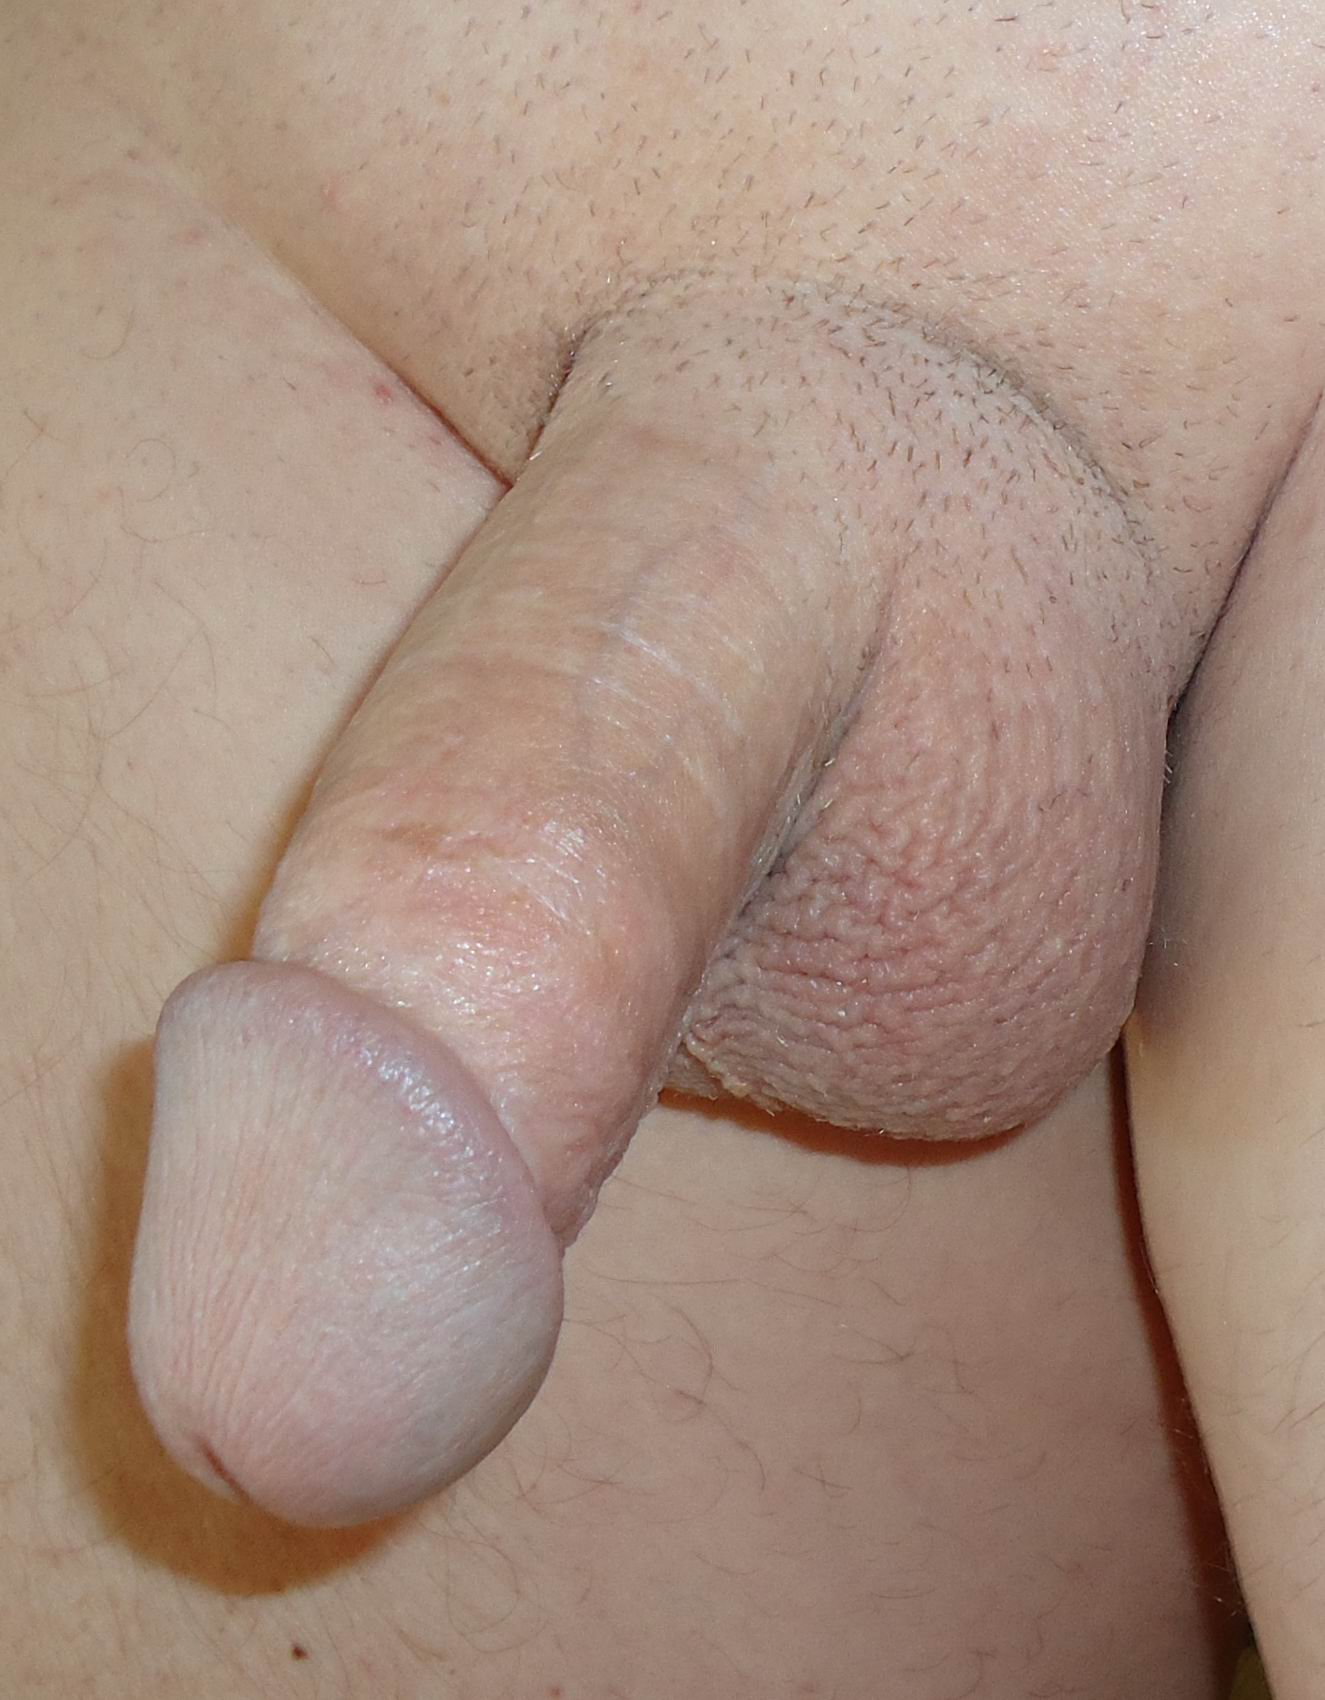 Dick hair trimming